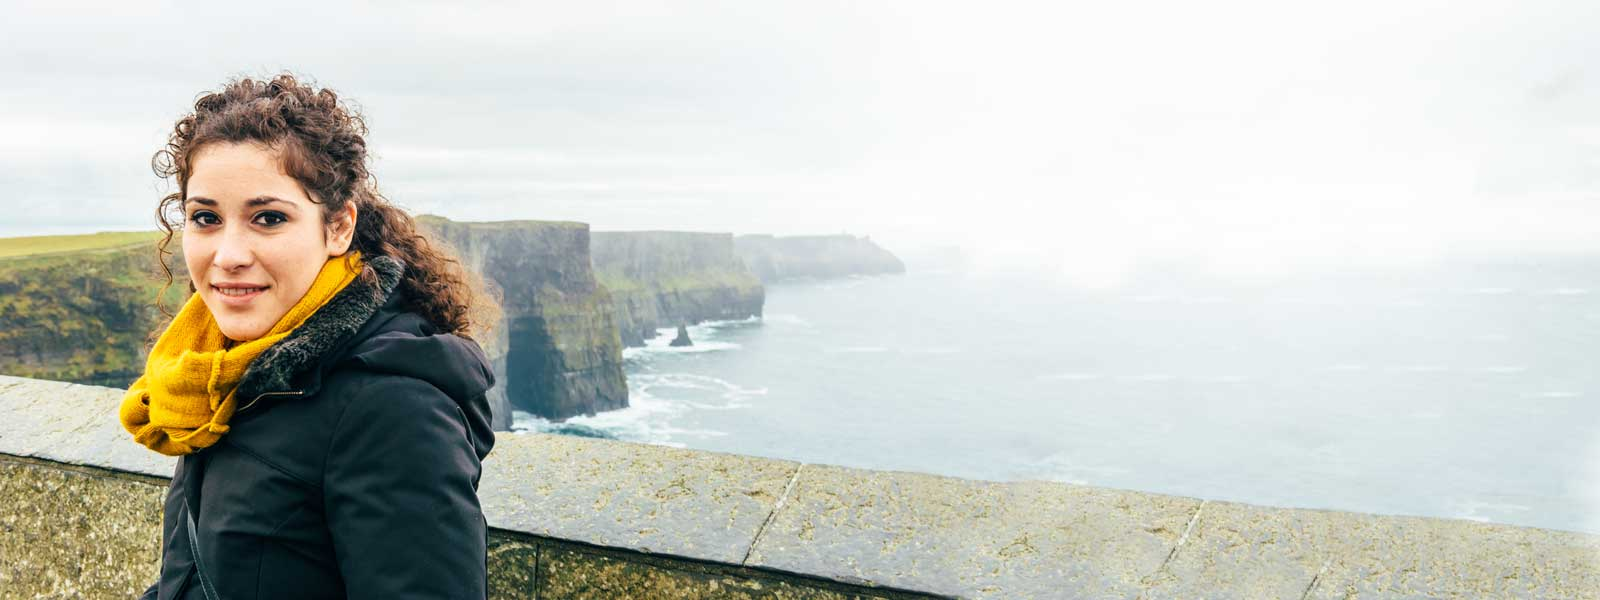 Participant with Cliffs of Ireland